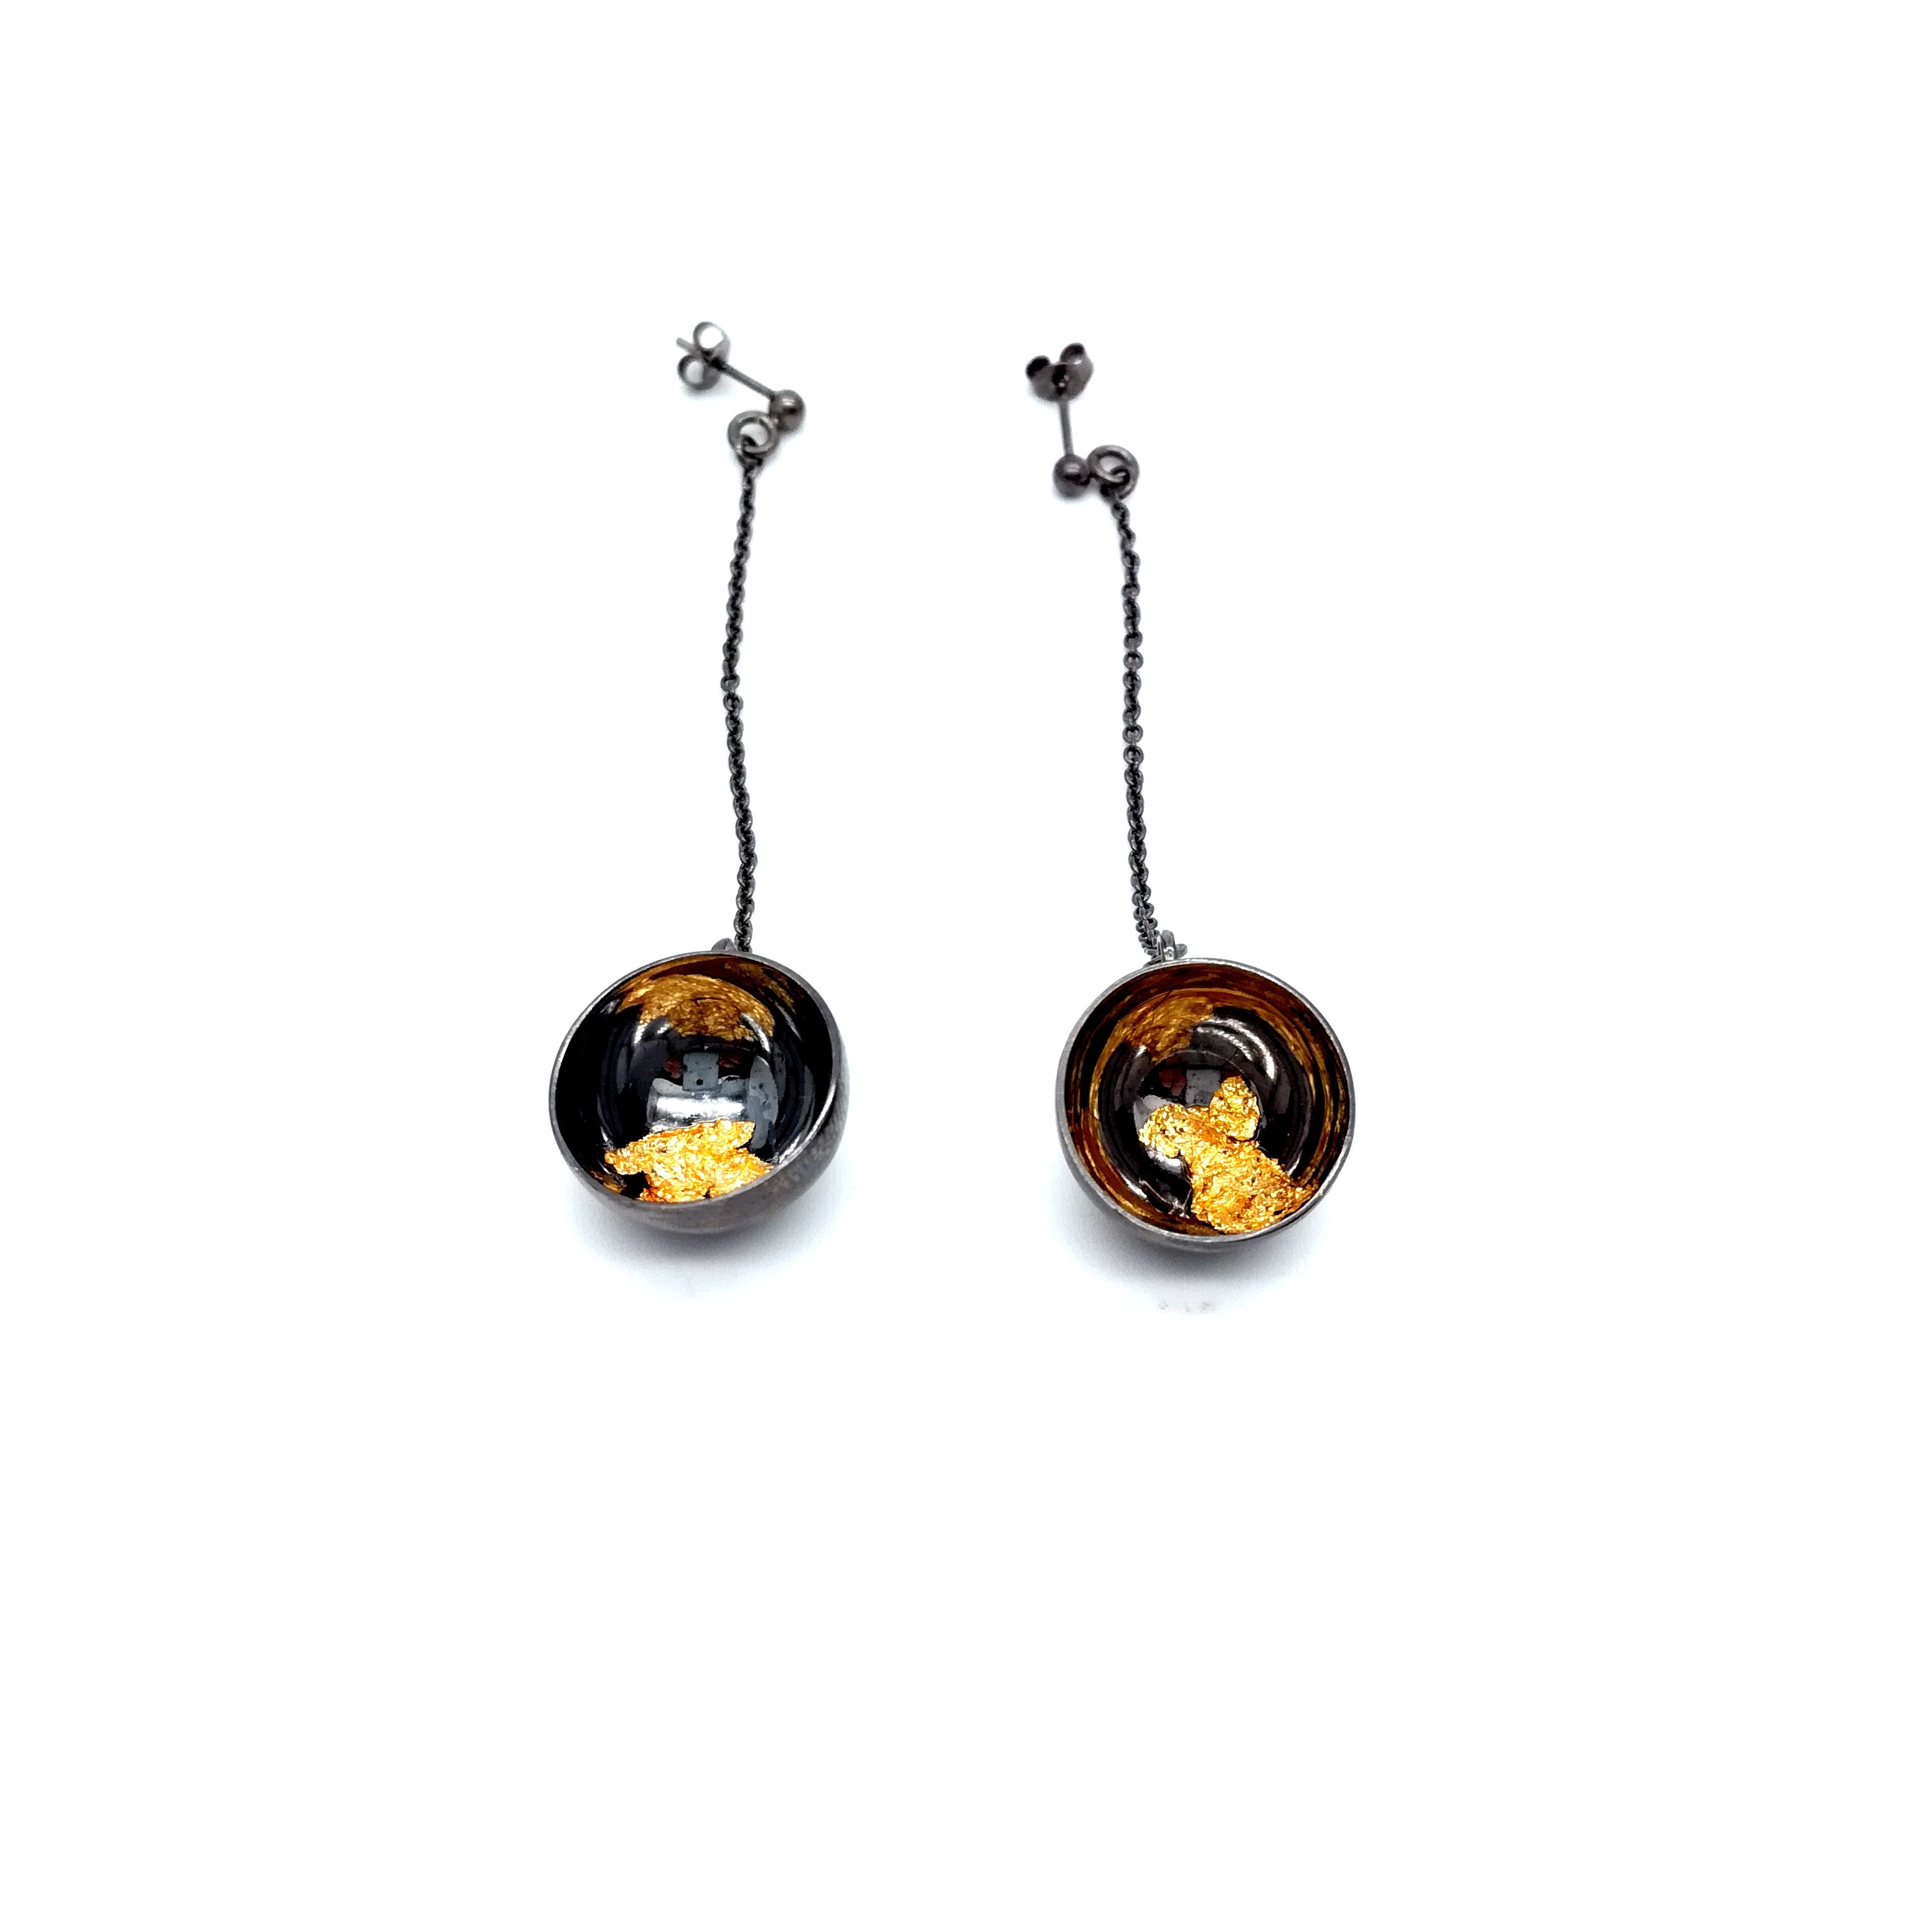 Silver earrings 925 black rhodium plated with resin and gold leaf 22K